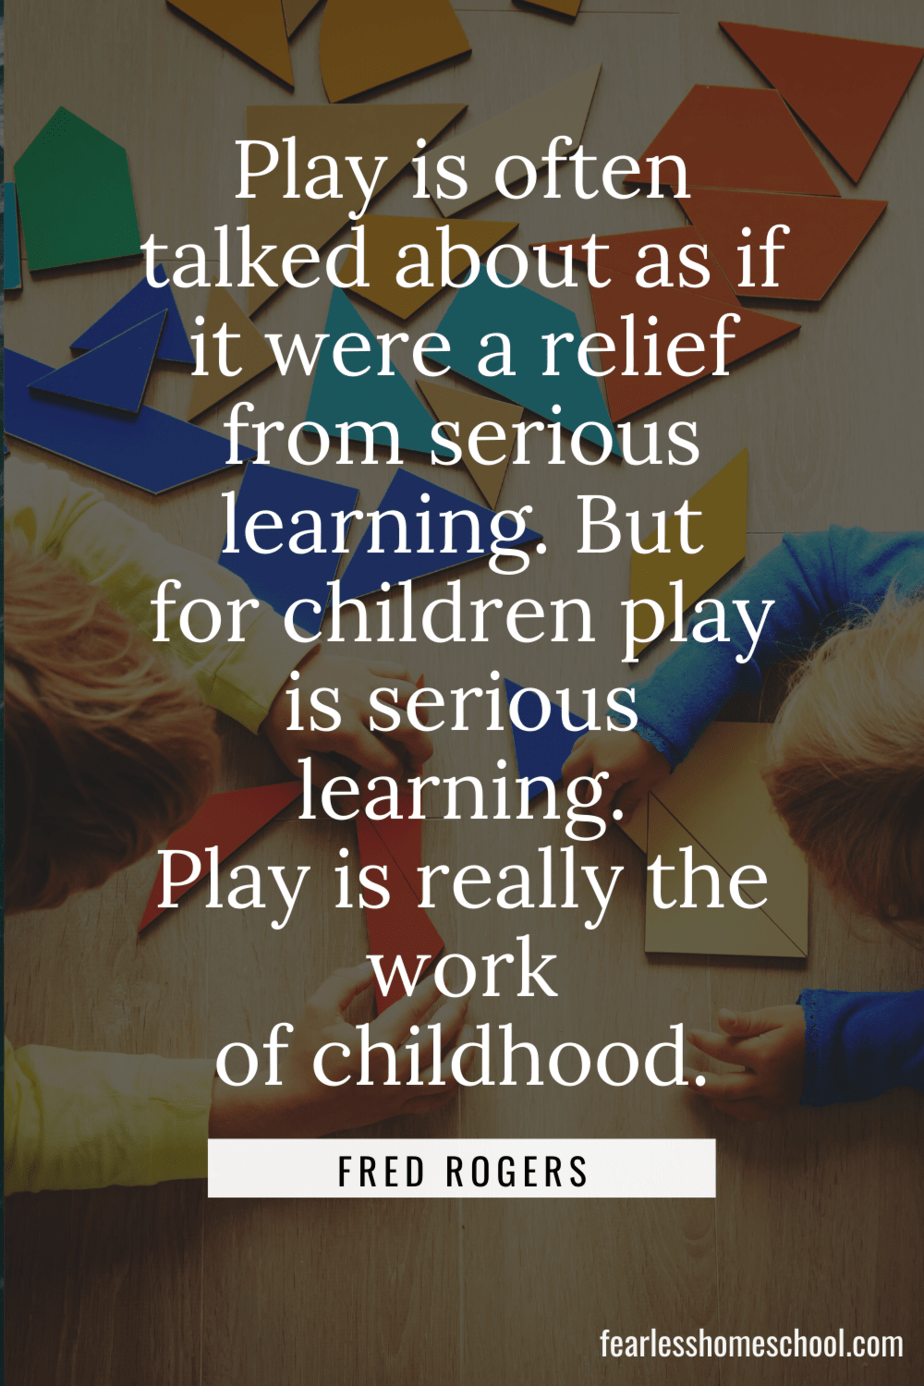 Play is often talked about as if it were a relief from serious learning. But for children play is serious learning. Play is really the work of childhood. fred rogers